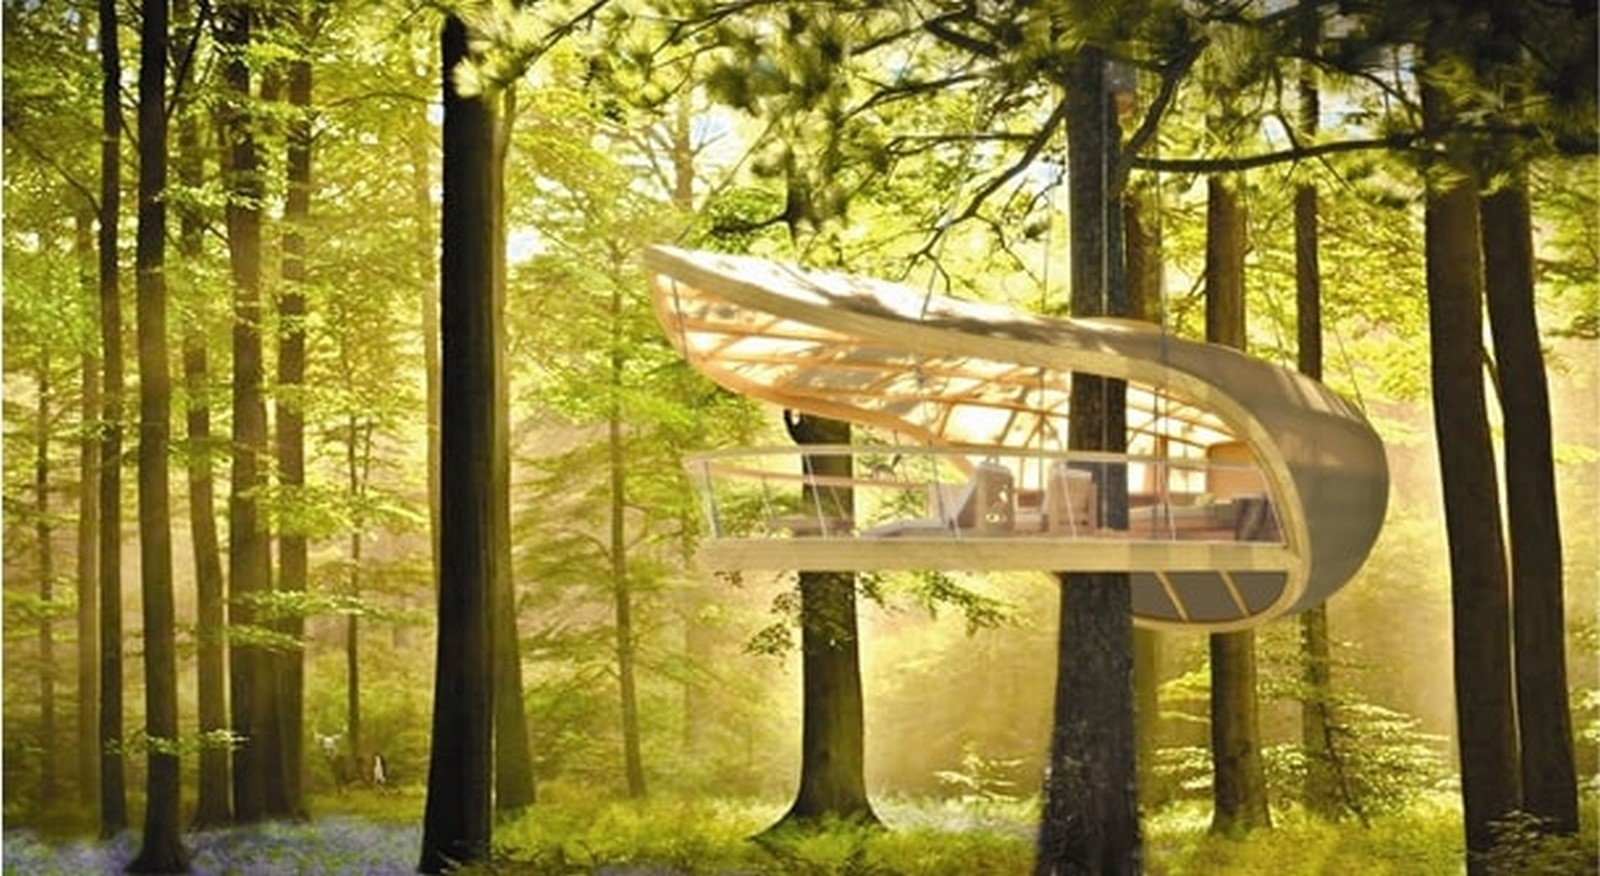 10 Things architects can learn from nature